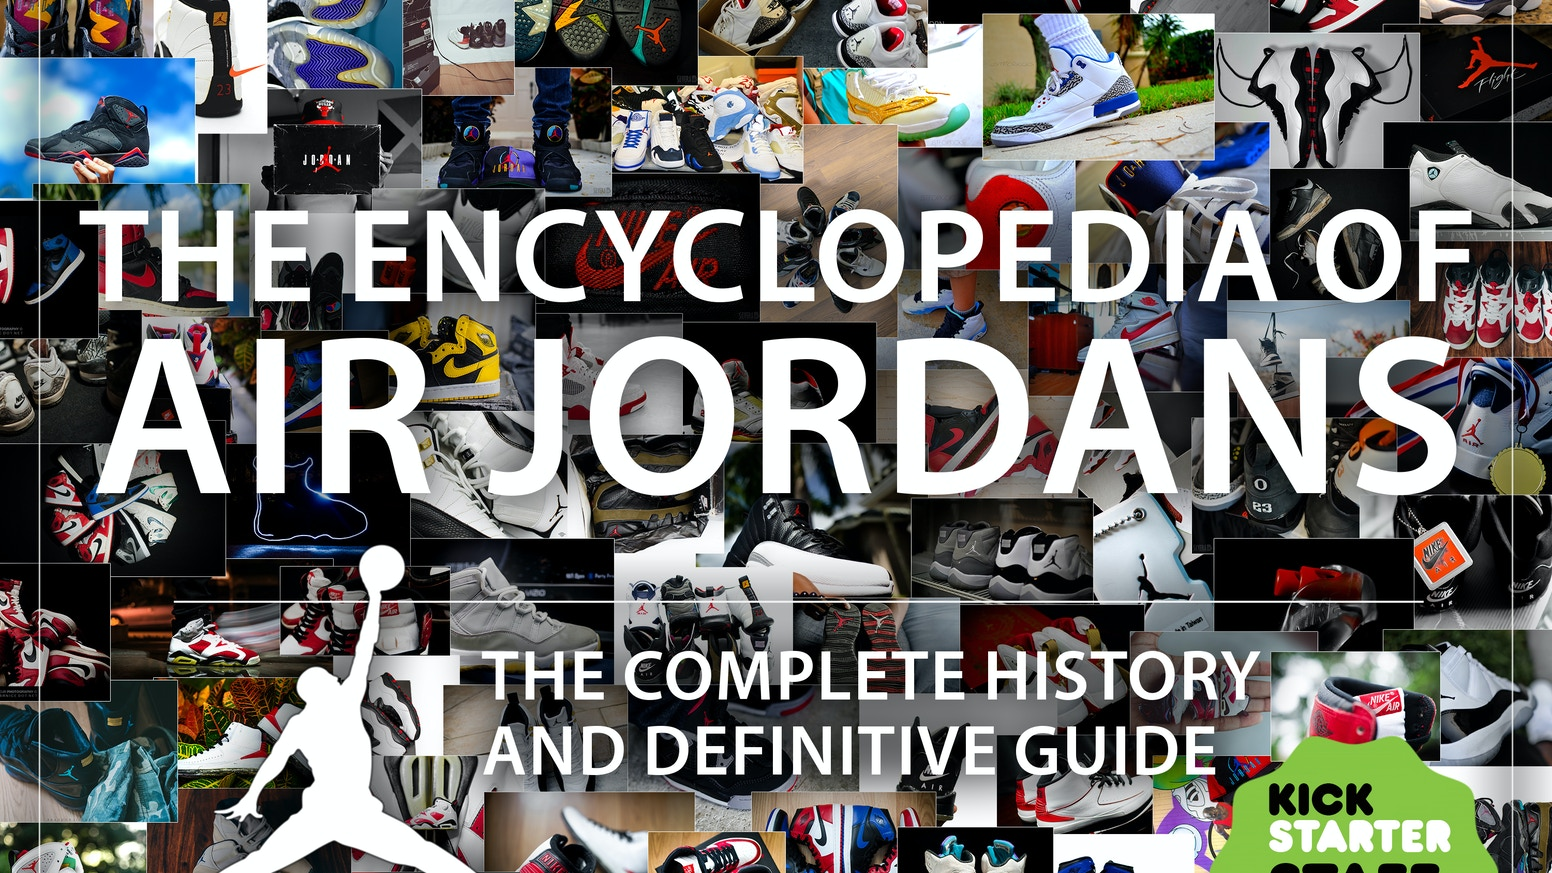 61b2e41ea3d3 Encyclopedia of Air Jordan sneakers by Jay Lawrence — Kickstarter